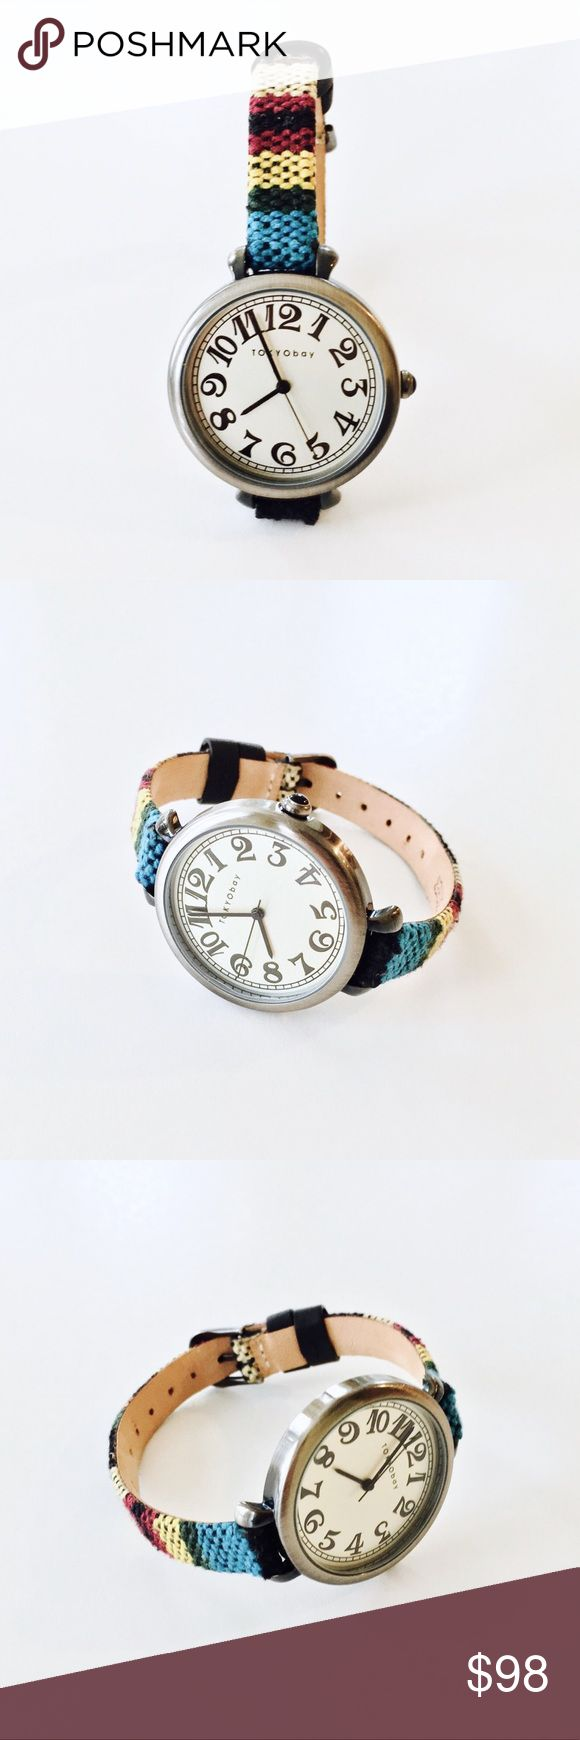 Free People x Tokyo Bay Sedona Woven Strap Watch Style: Multicolored woven leather strap watch, adjustable buckle closure, stainless steel foundation. Color: Black.  Fabric: Textile, Leather.  Condition: Pre-owned with slight wear on the case and strap; otherwise good condition. Free People Accessories Watches